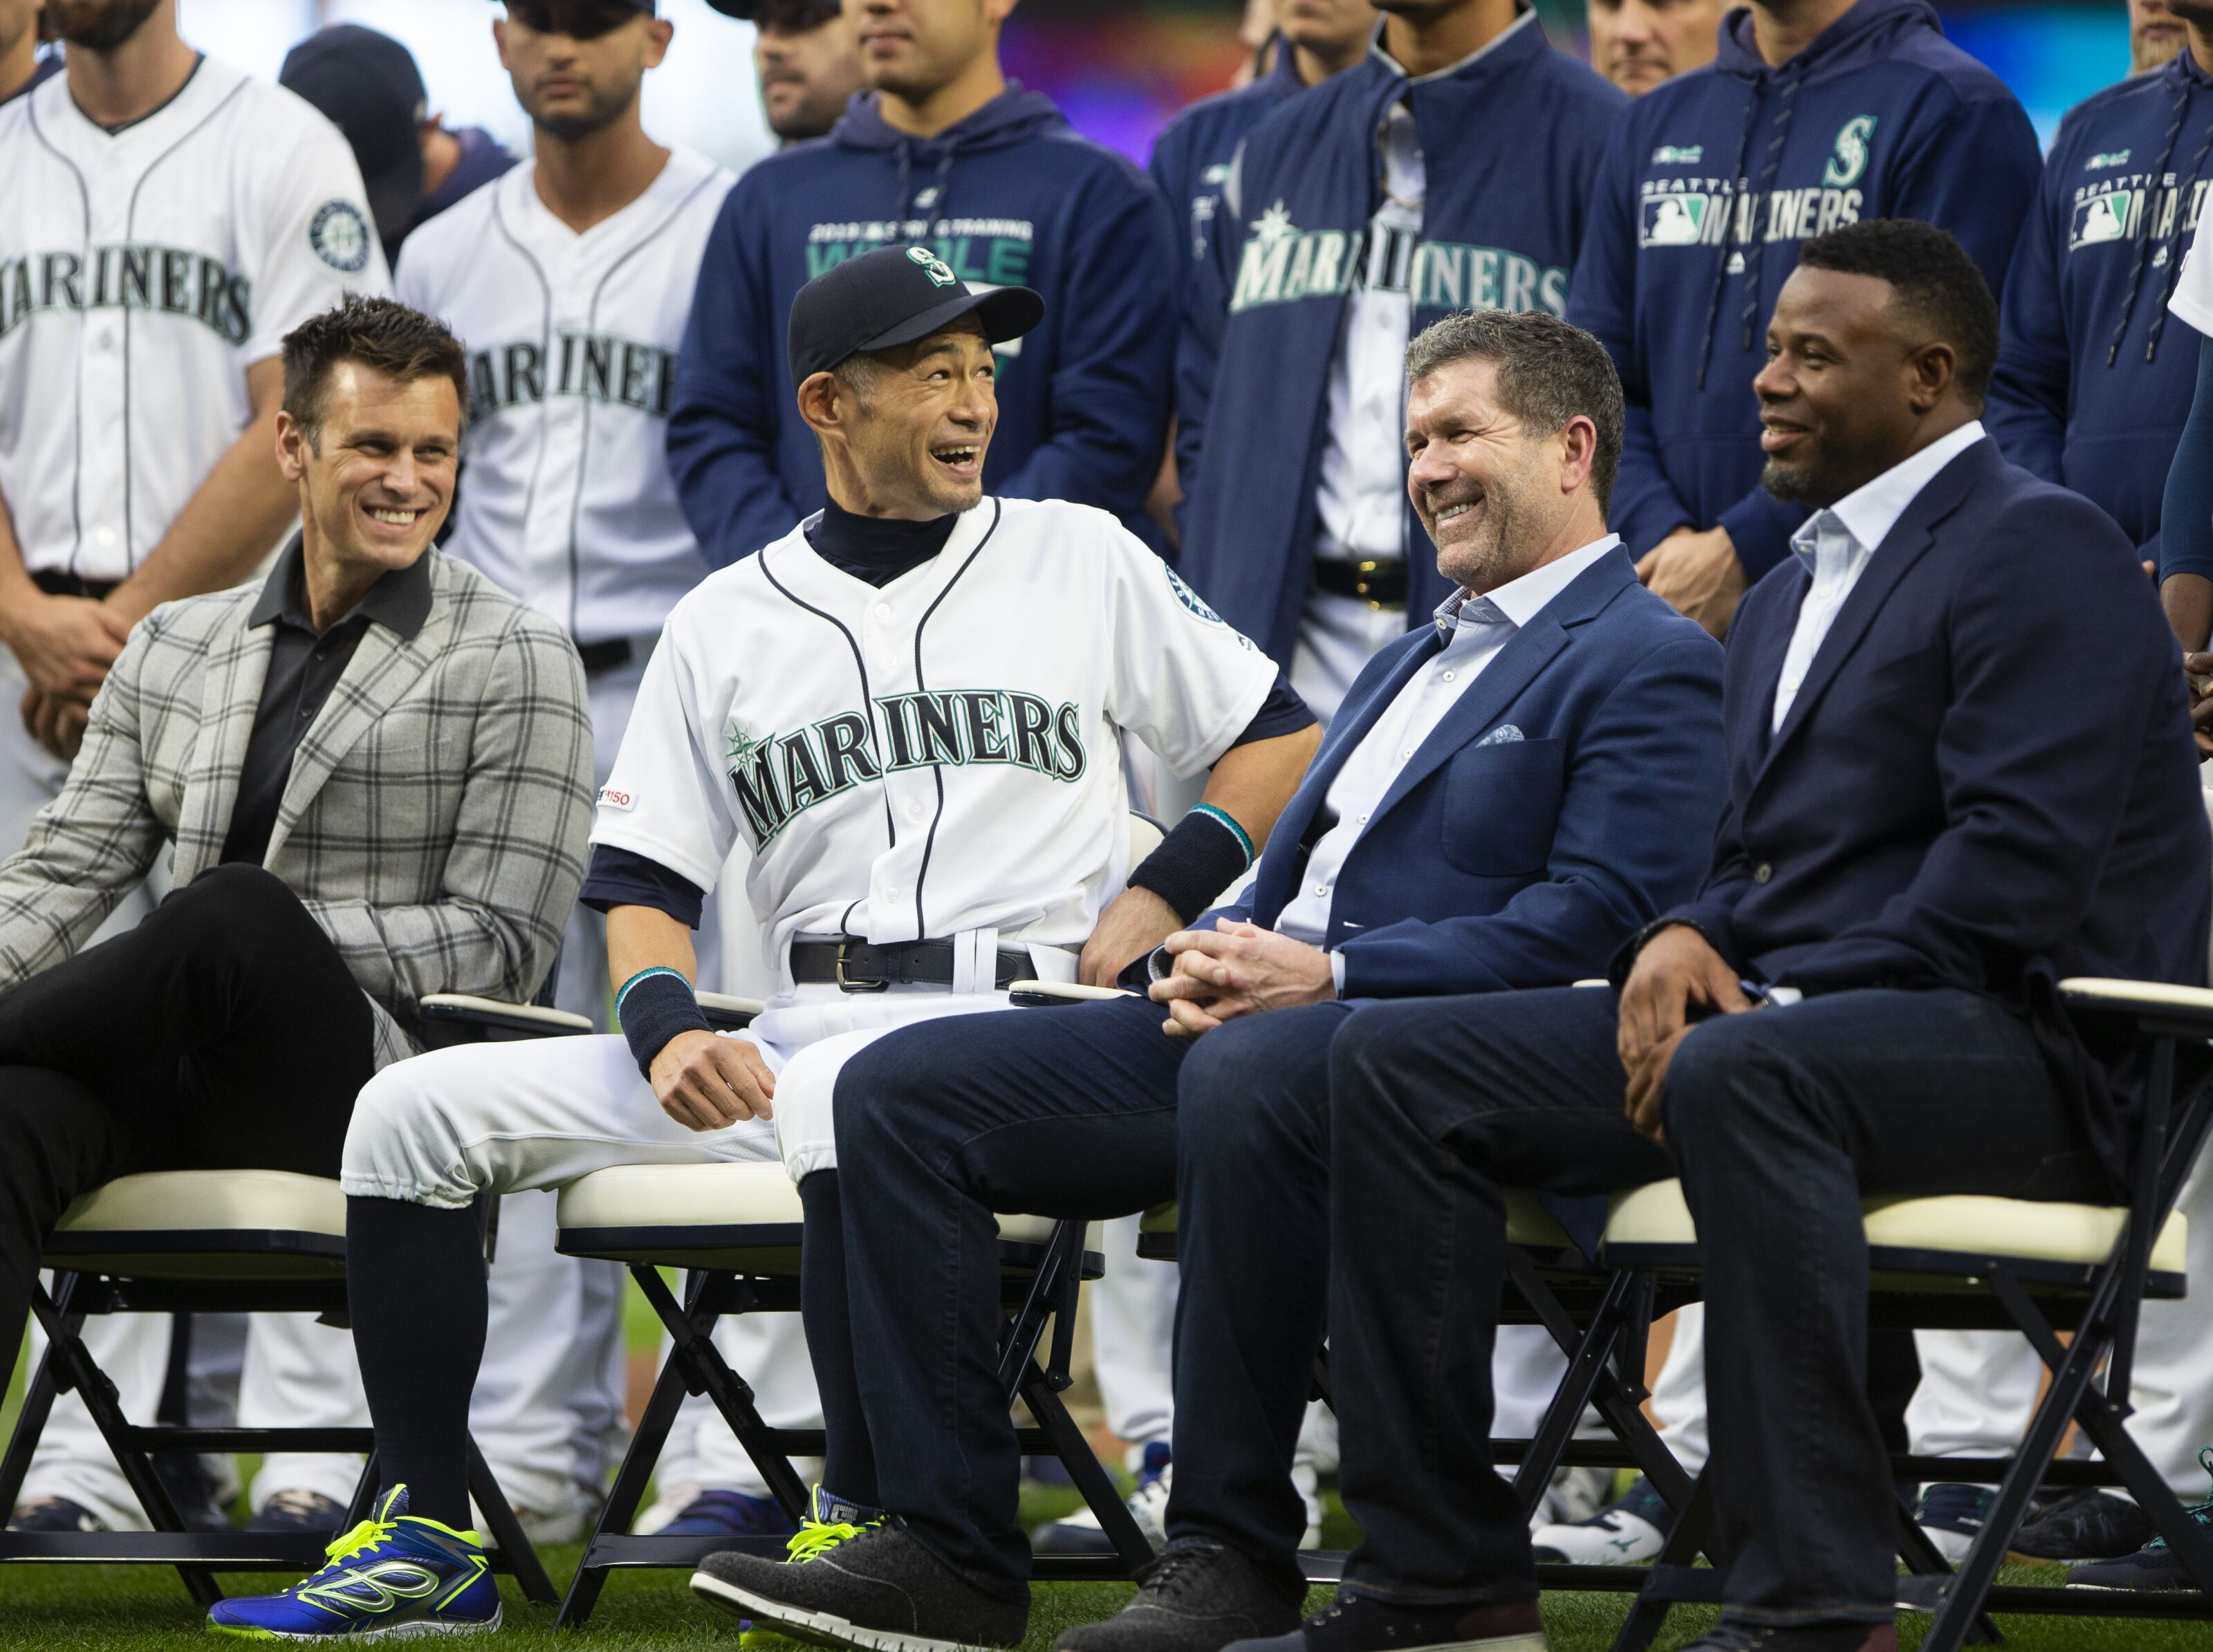 The Seattle Mariners, last team without a pennant